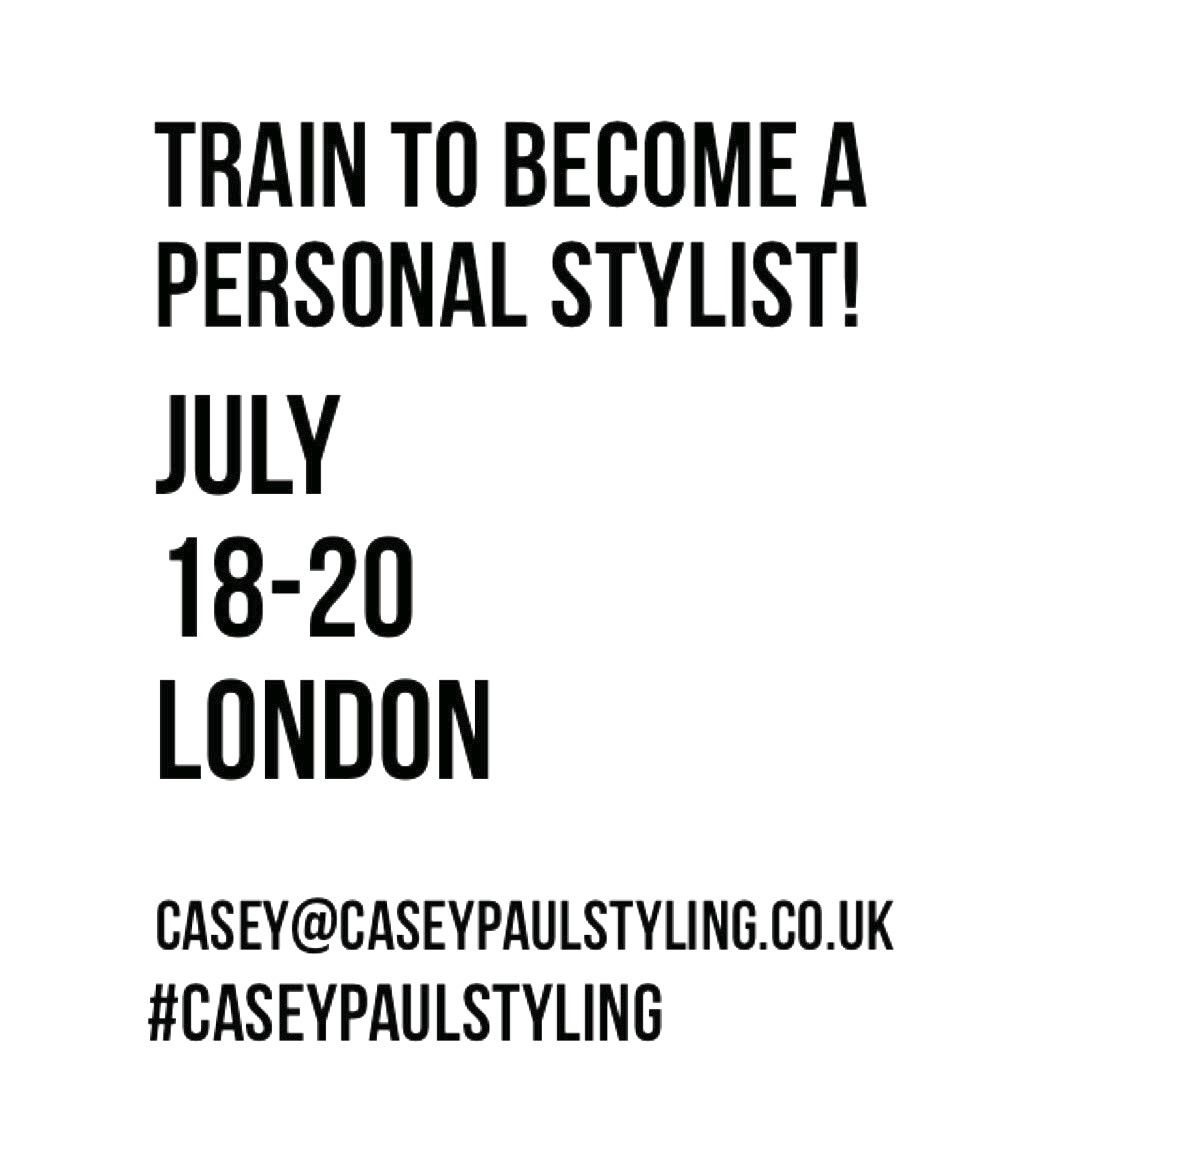 Train to become a personal stylist